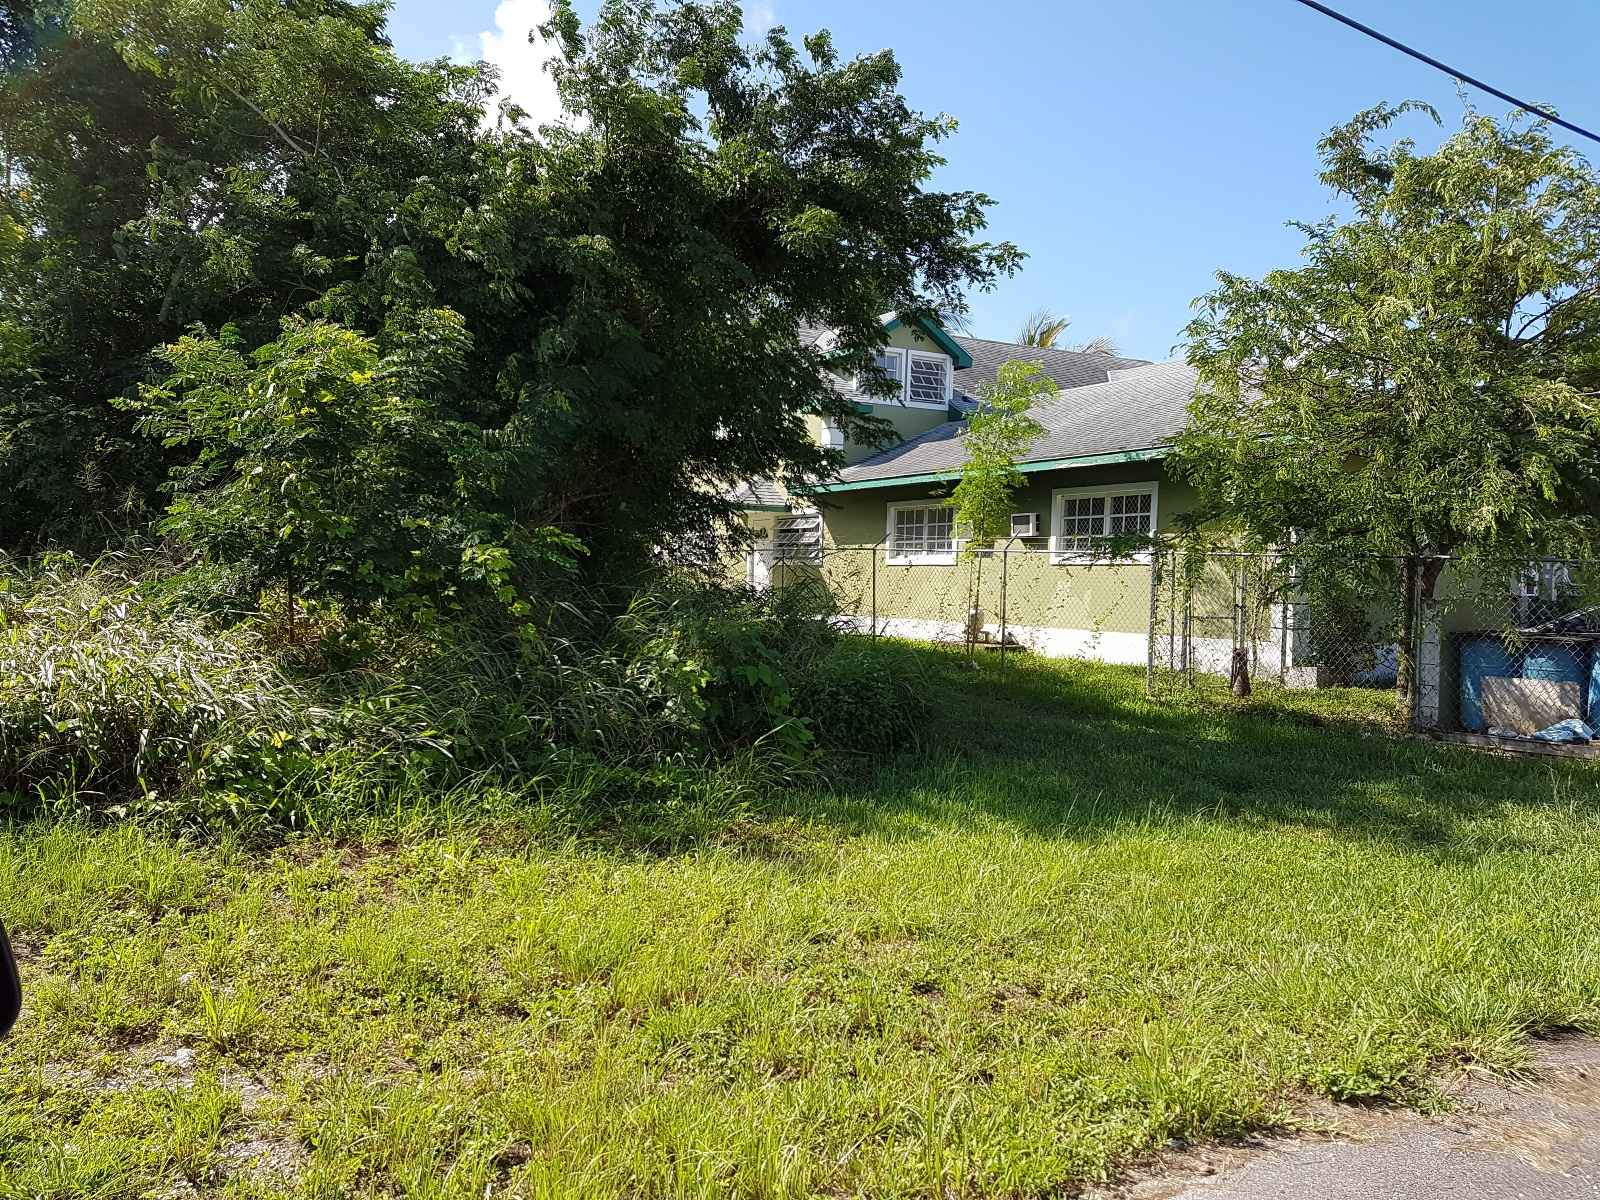 Land for Sale at Multi-family lot off Cowpen Road - MLS 28497 Nassau And Paradise Island, Bahamas